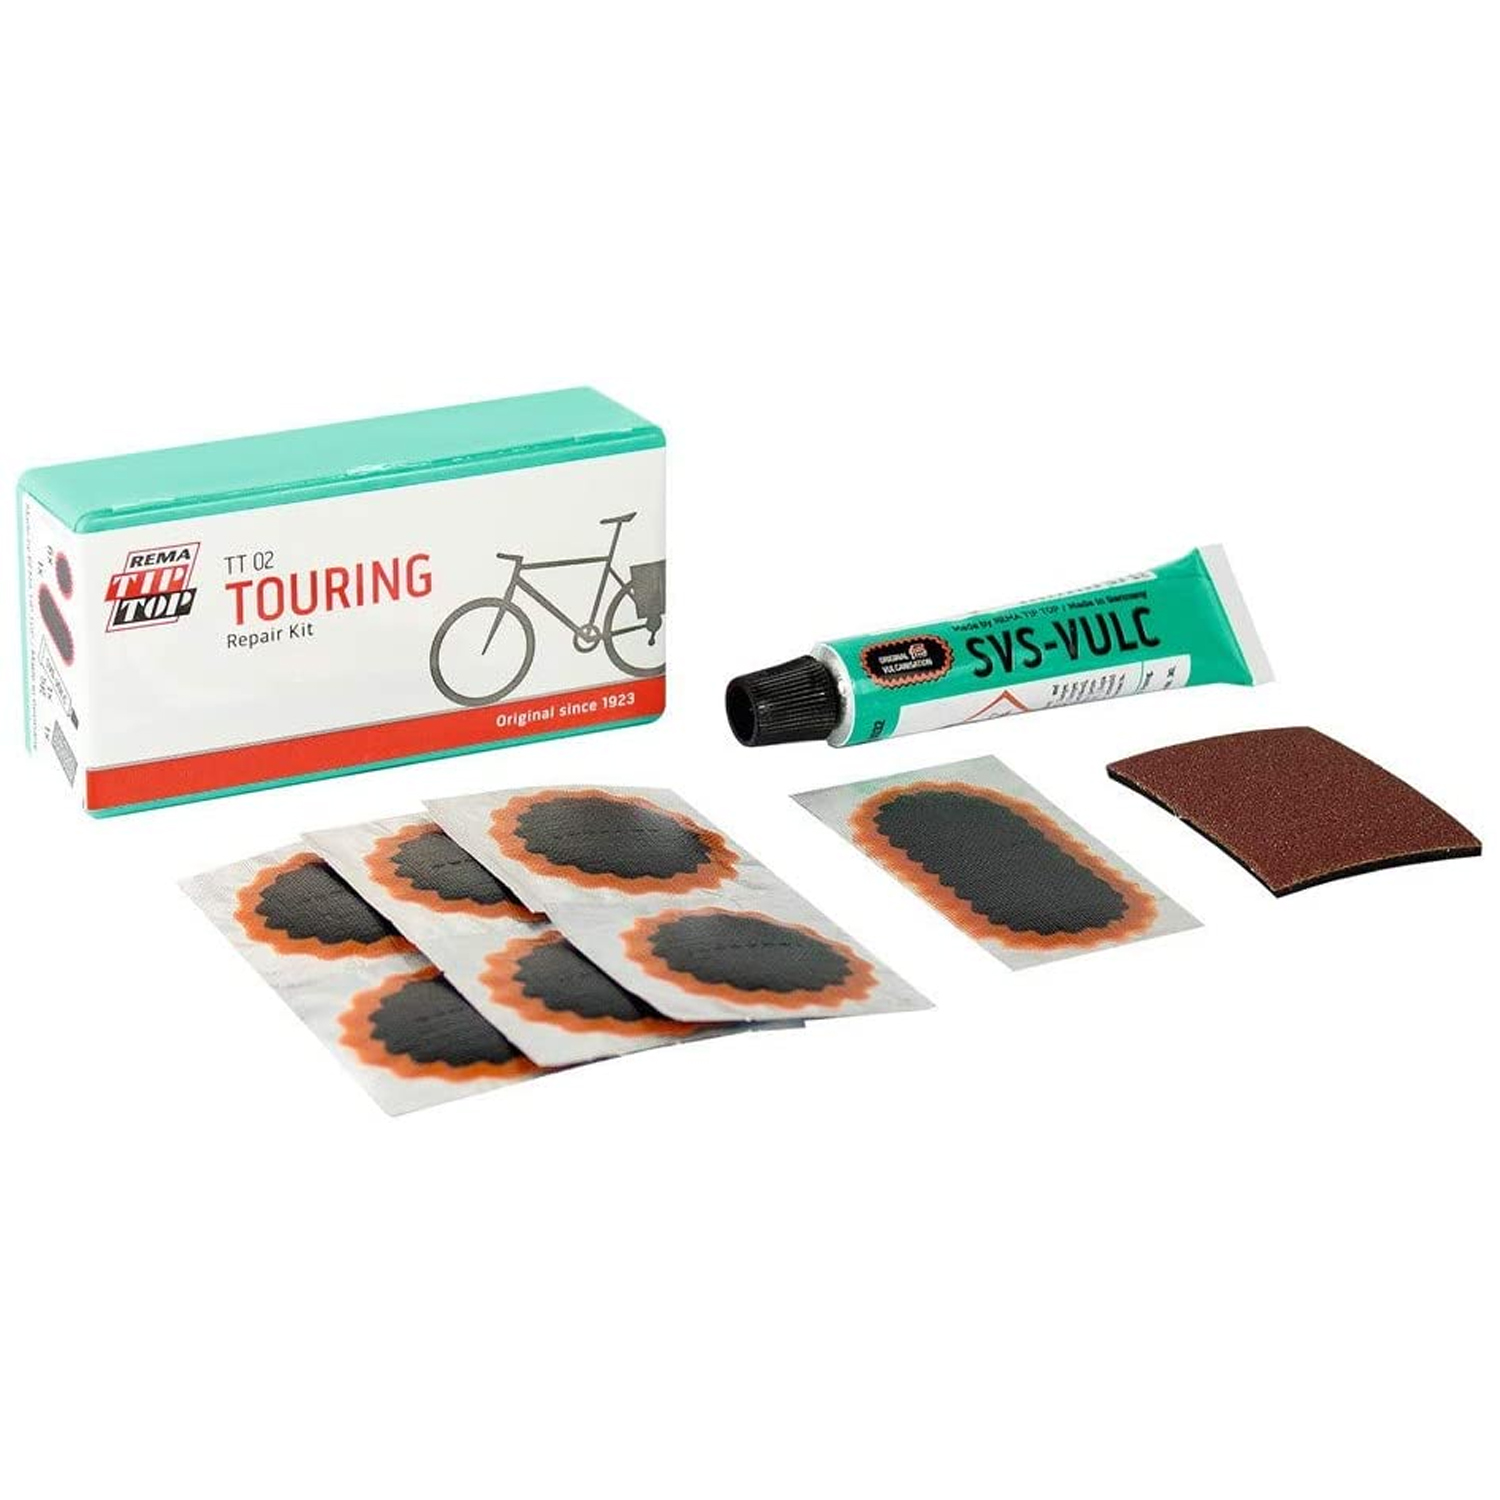 kit-de-parches-para-bici-kit-completo-7-parches-con-pegamento-y-lija